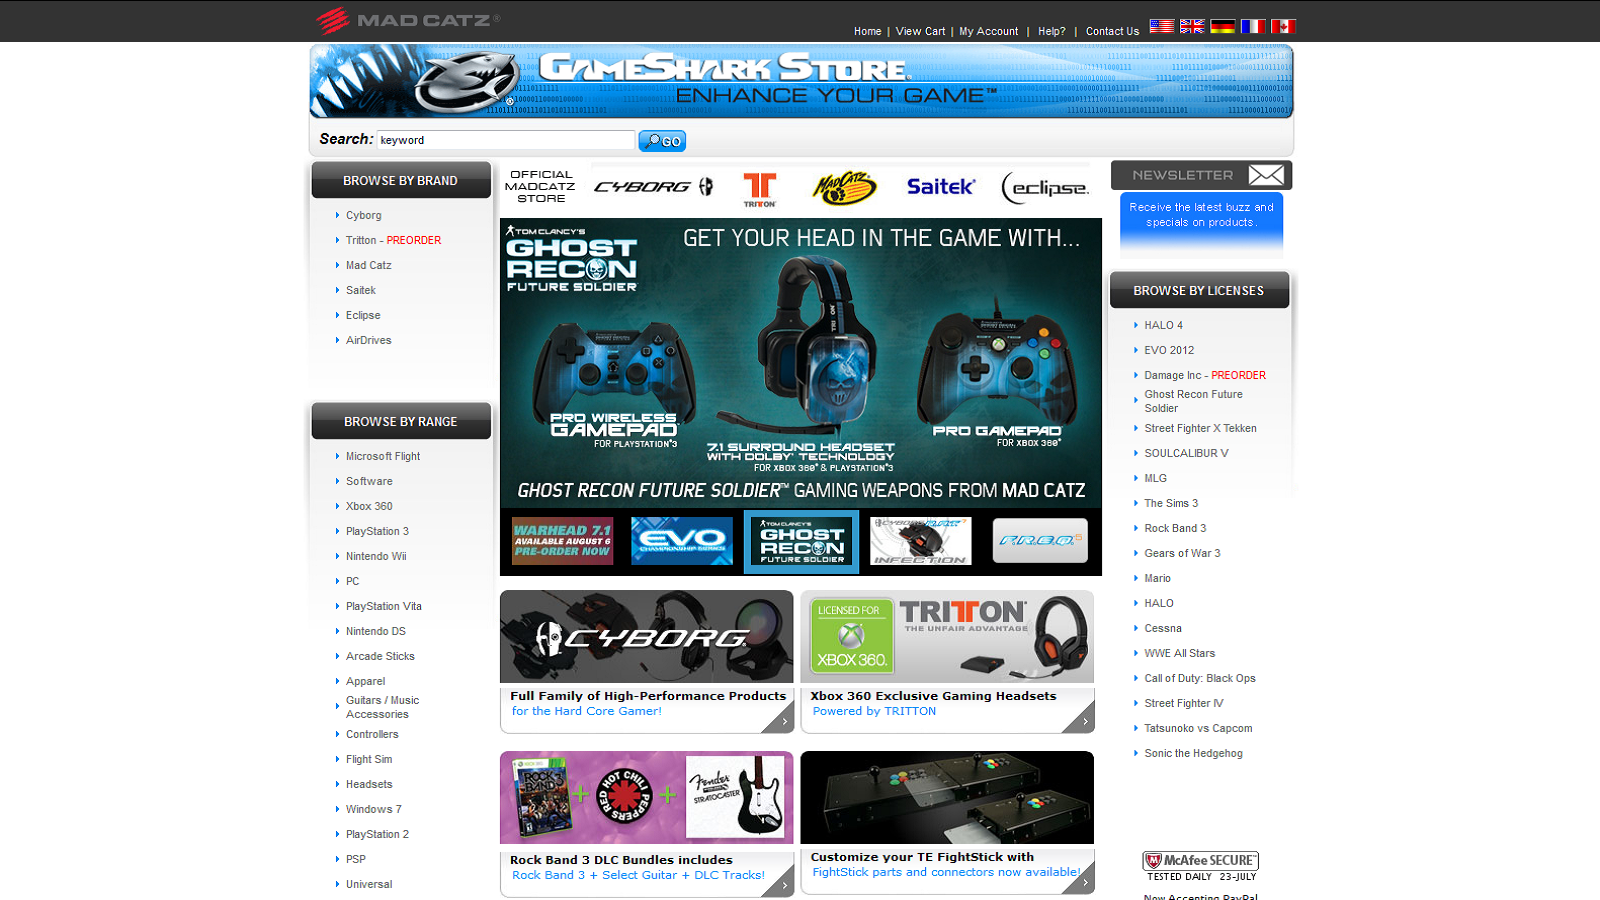 GameShark Coupons & Promo Codes